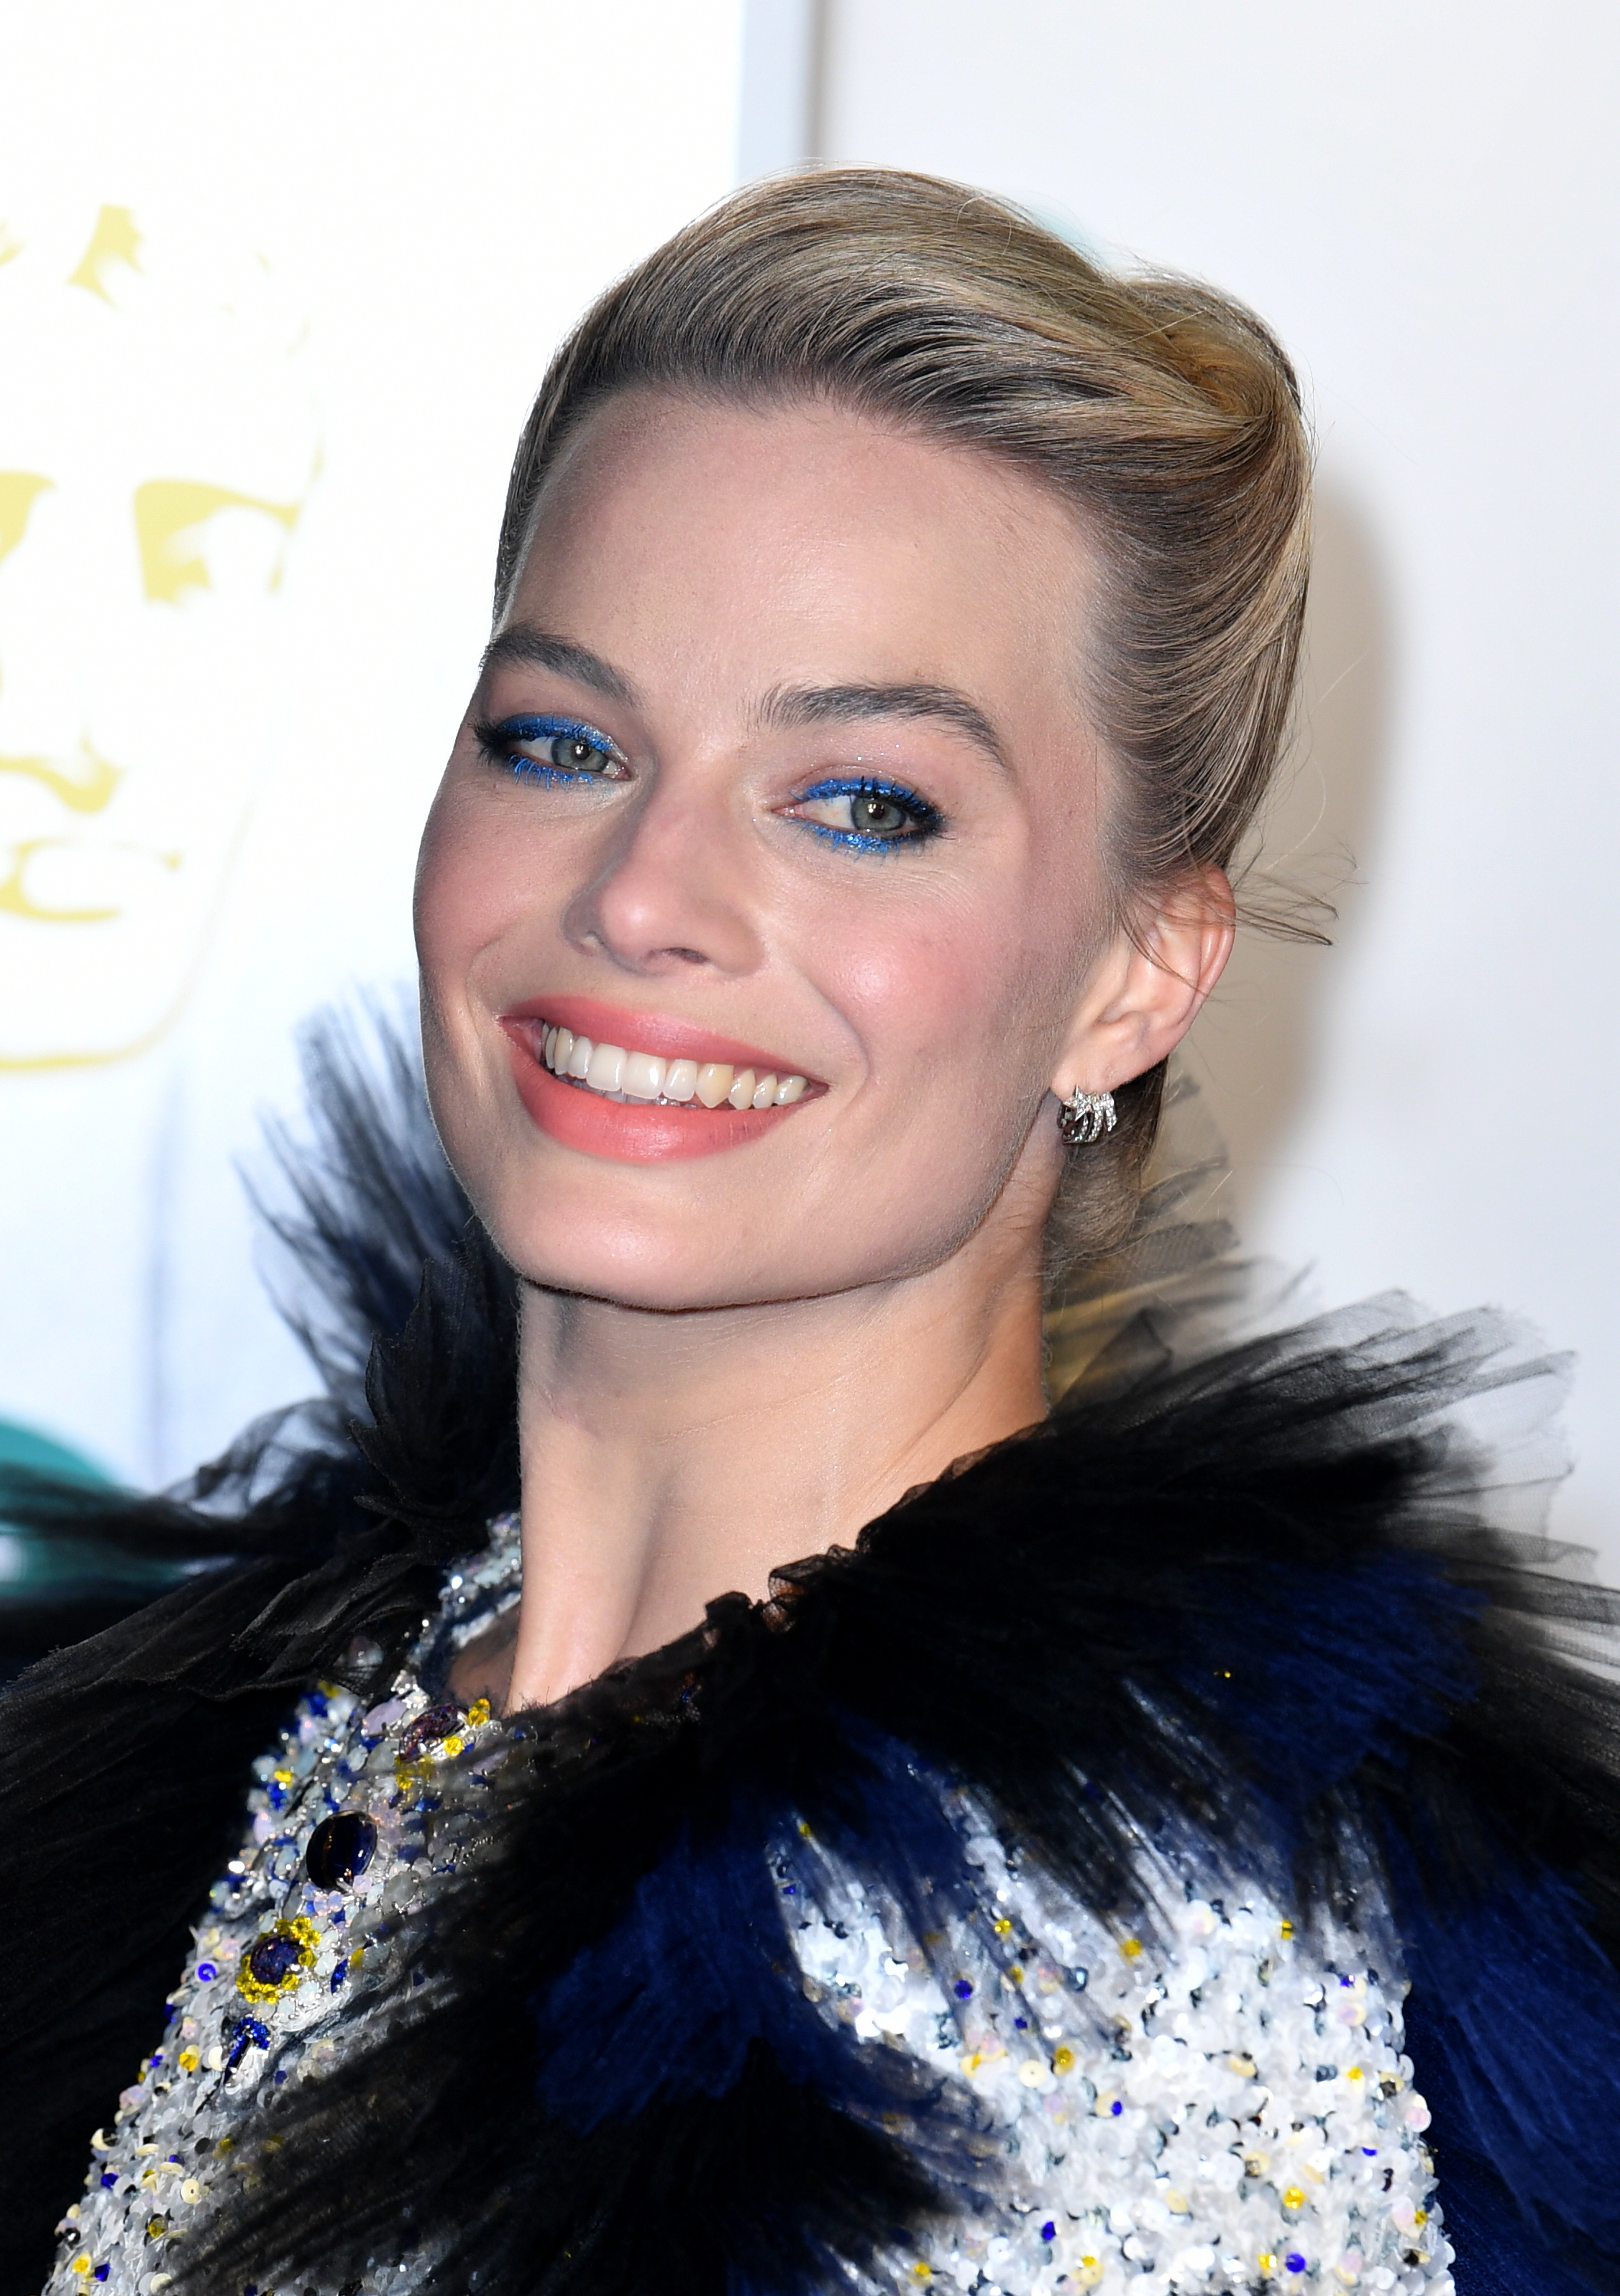 Margot Robbie attends the 72nd British Academy Film Awards in London on Feb. 10, 2019.